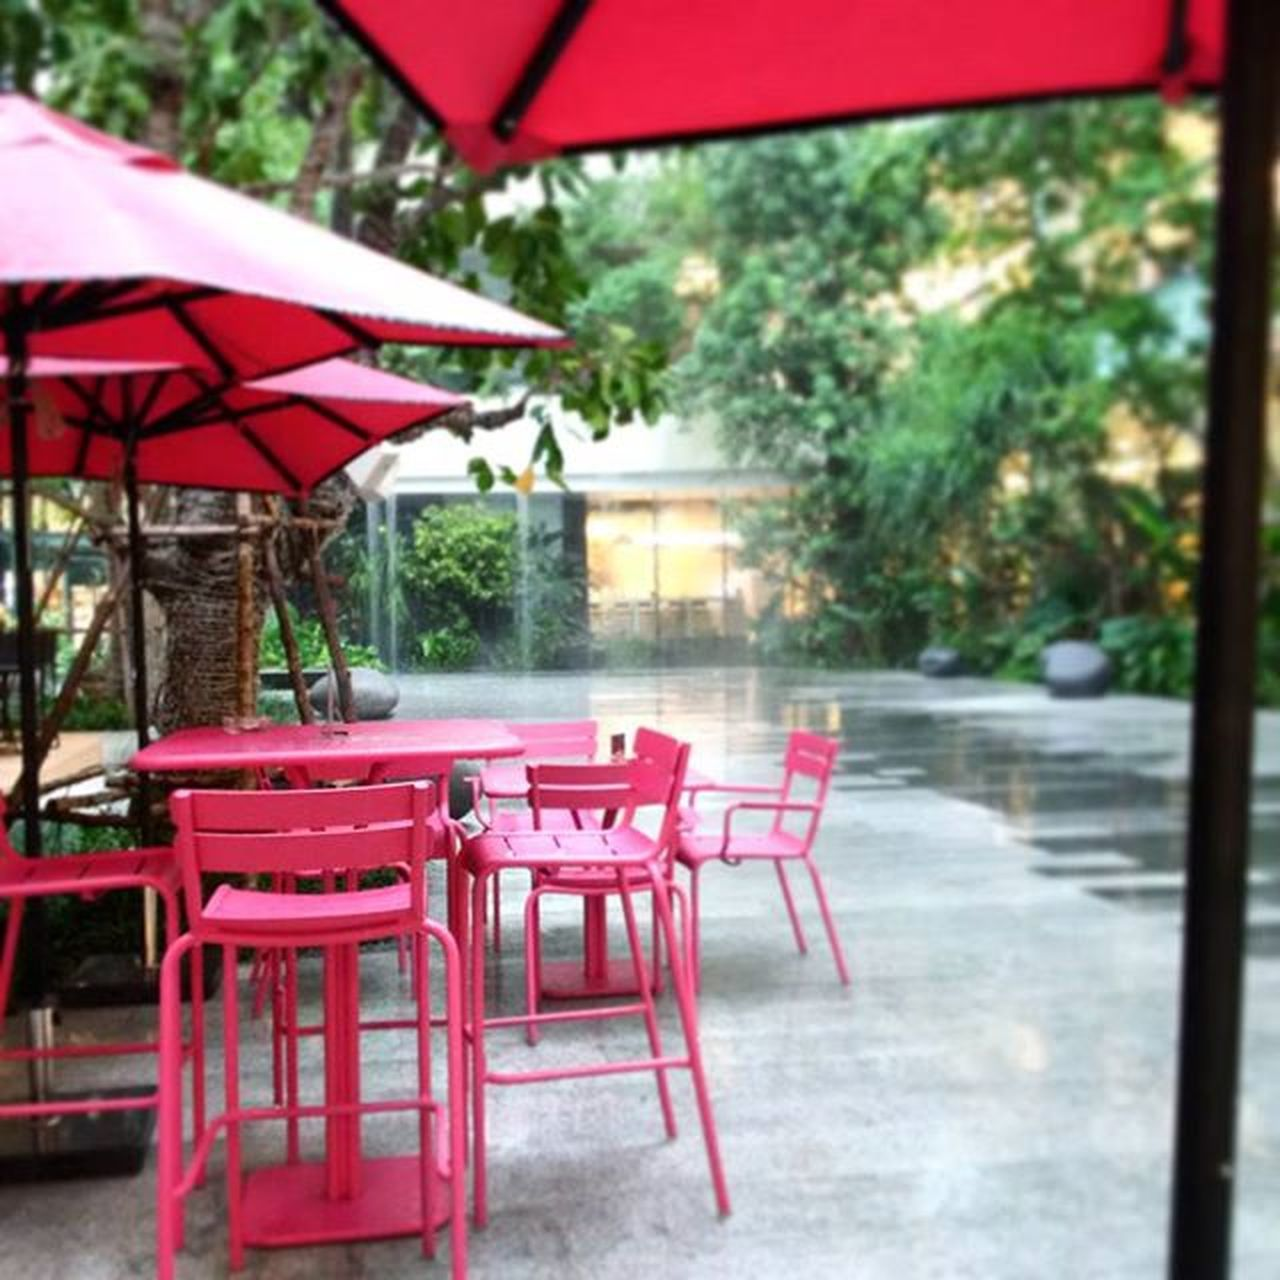 It's such a raining day :) Life is about lives in where you comfortable Love to spend with someone worth it Someone is worth that the one you can waiting for Love Lifekeepsgoing Kanchyslife Lifestyle Allaboutpink Pink Paris Cafe Pastry Lovelikecandy